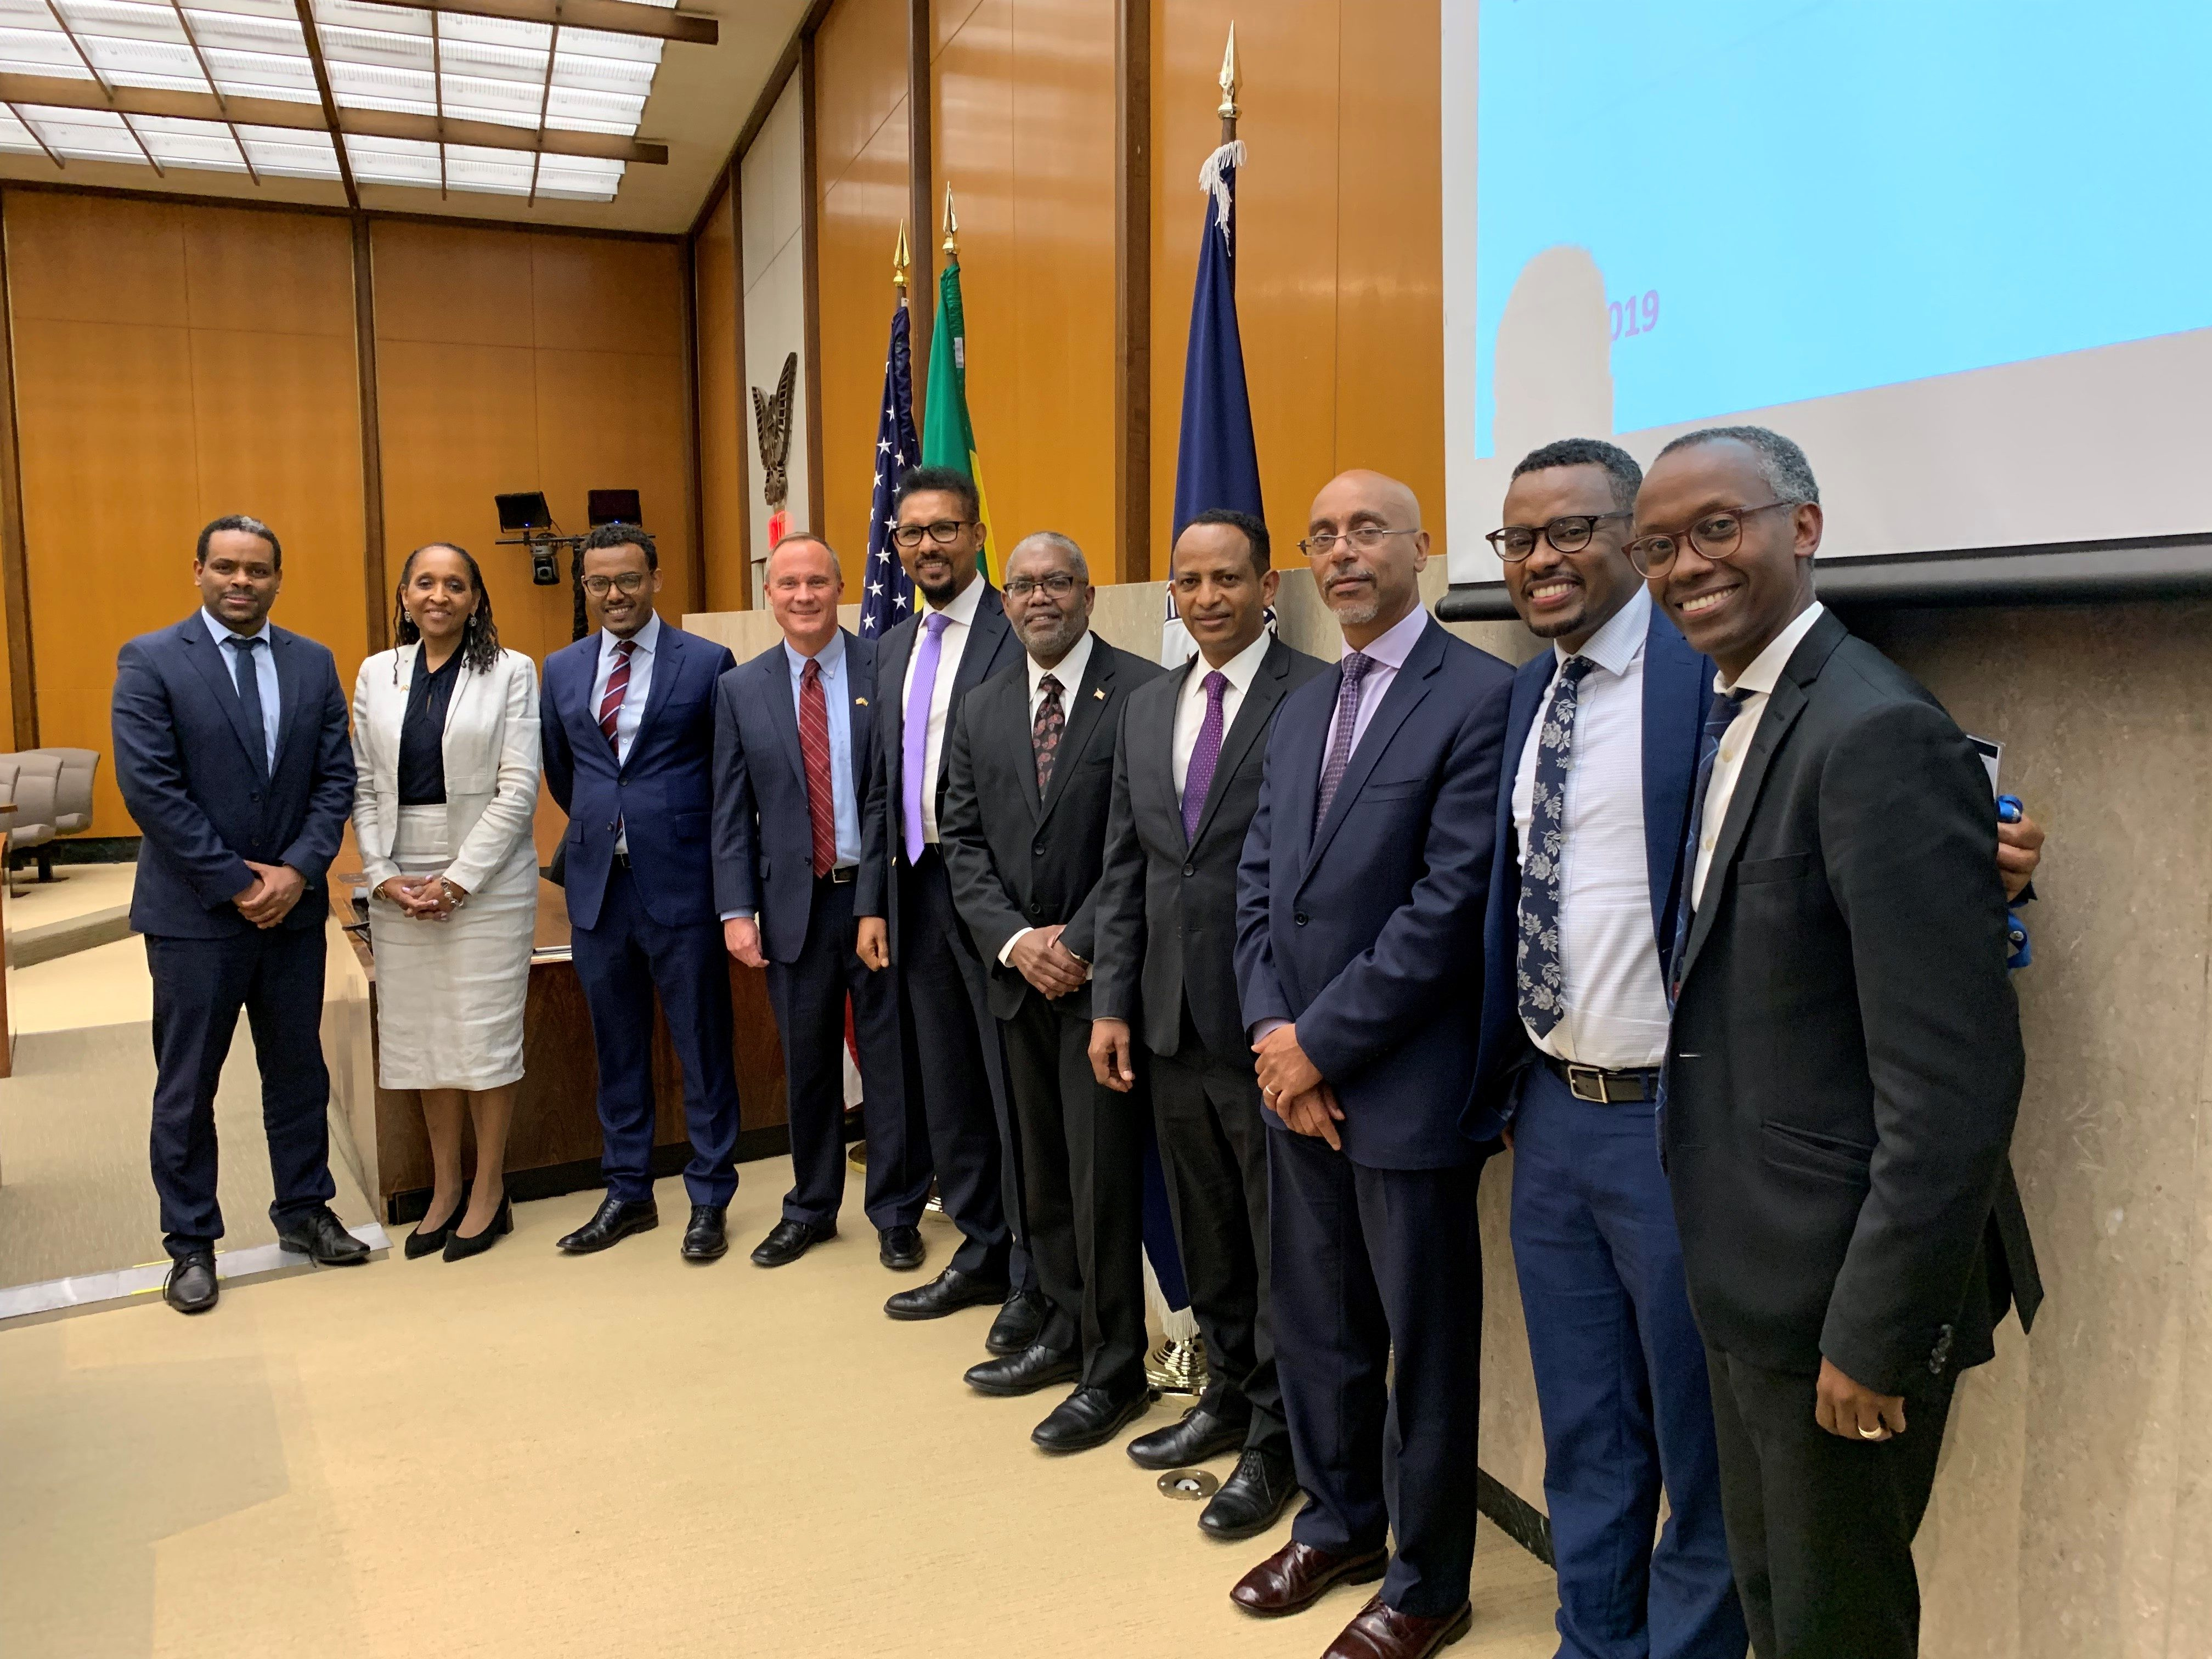 Ethiopian Delegation officials convened with State Department officials to discuss American investment opportunities in Ethiopia at the 2019 Ethiopian Partnerships Forum.